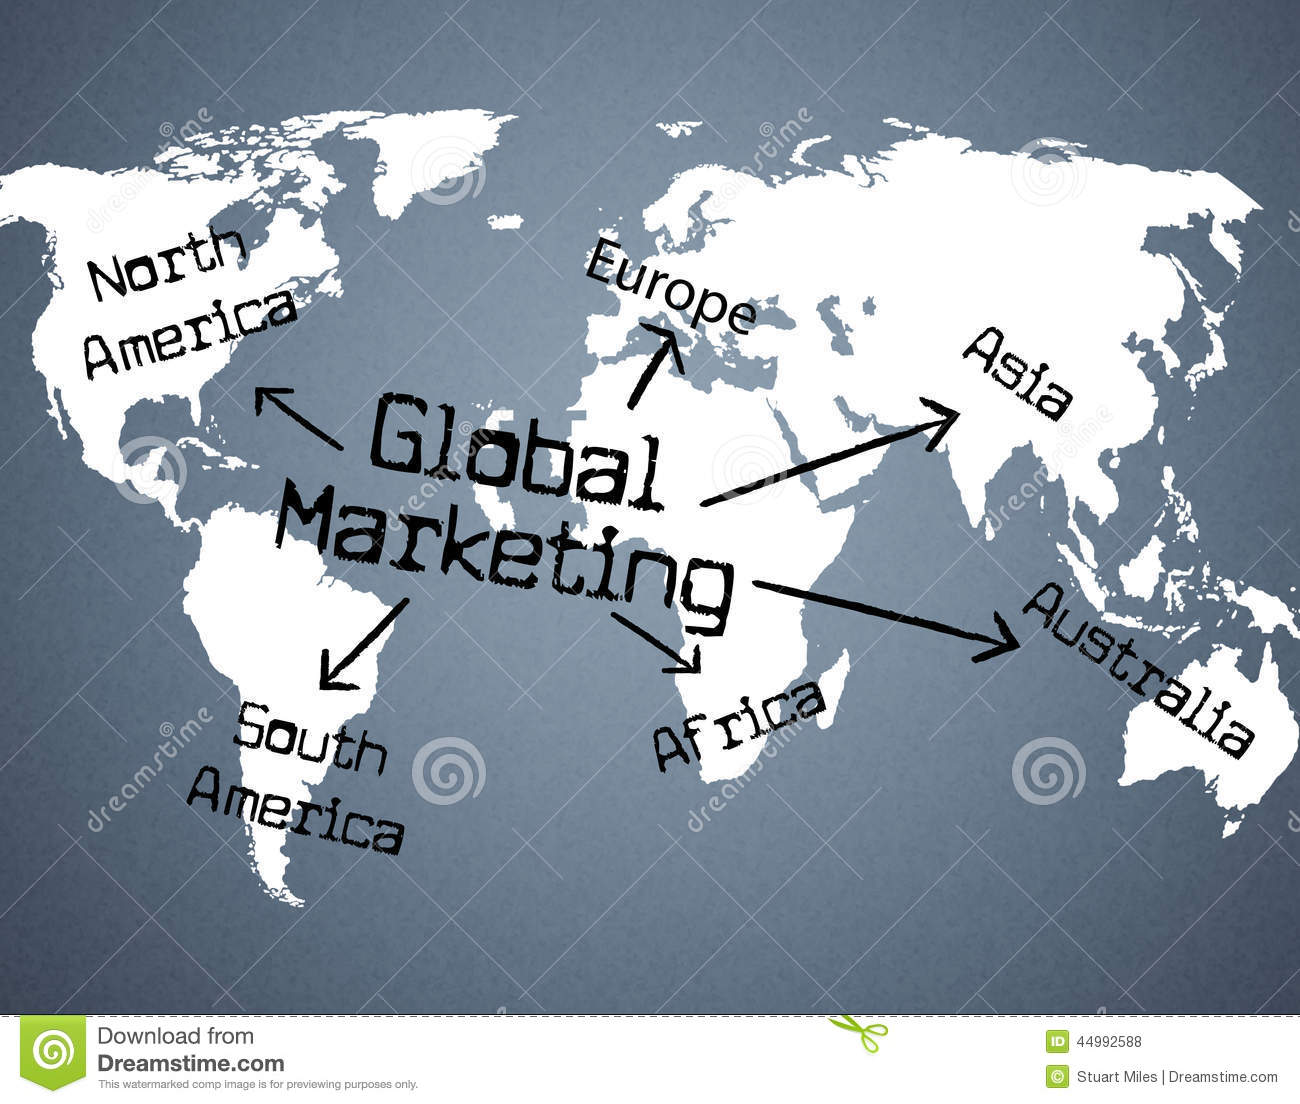 globalization and marketing Marketing globalization is a synergistic term combining the promotion and selling of goods and services with an increasingly interdependent and integrated global economy.